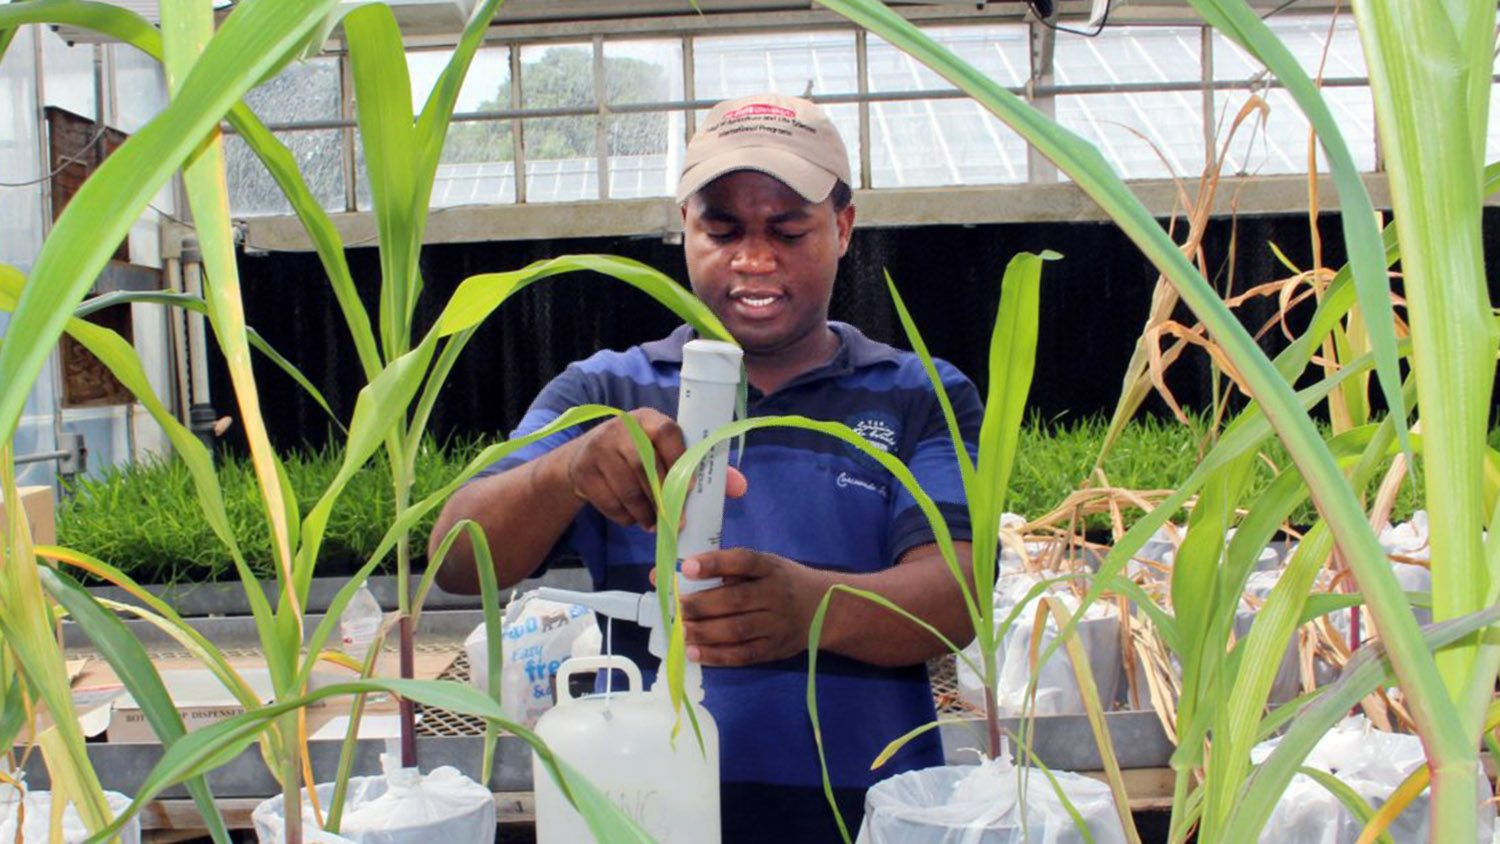 Mozambique professor studying at NC State works with plants in a greenhouse while wearing a hat.